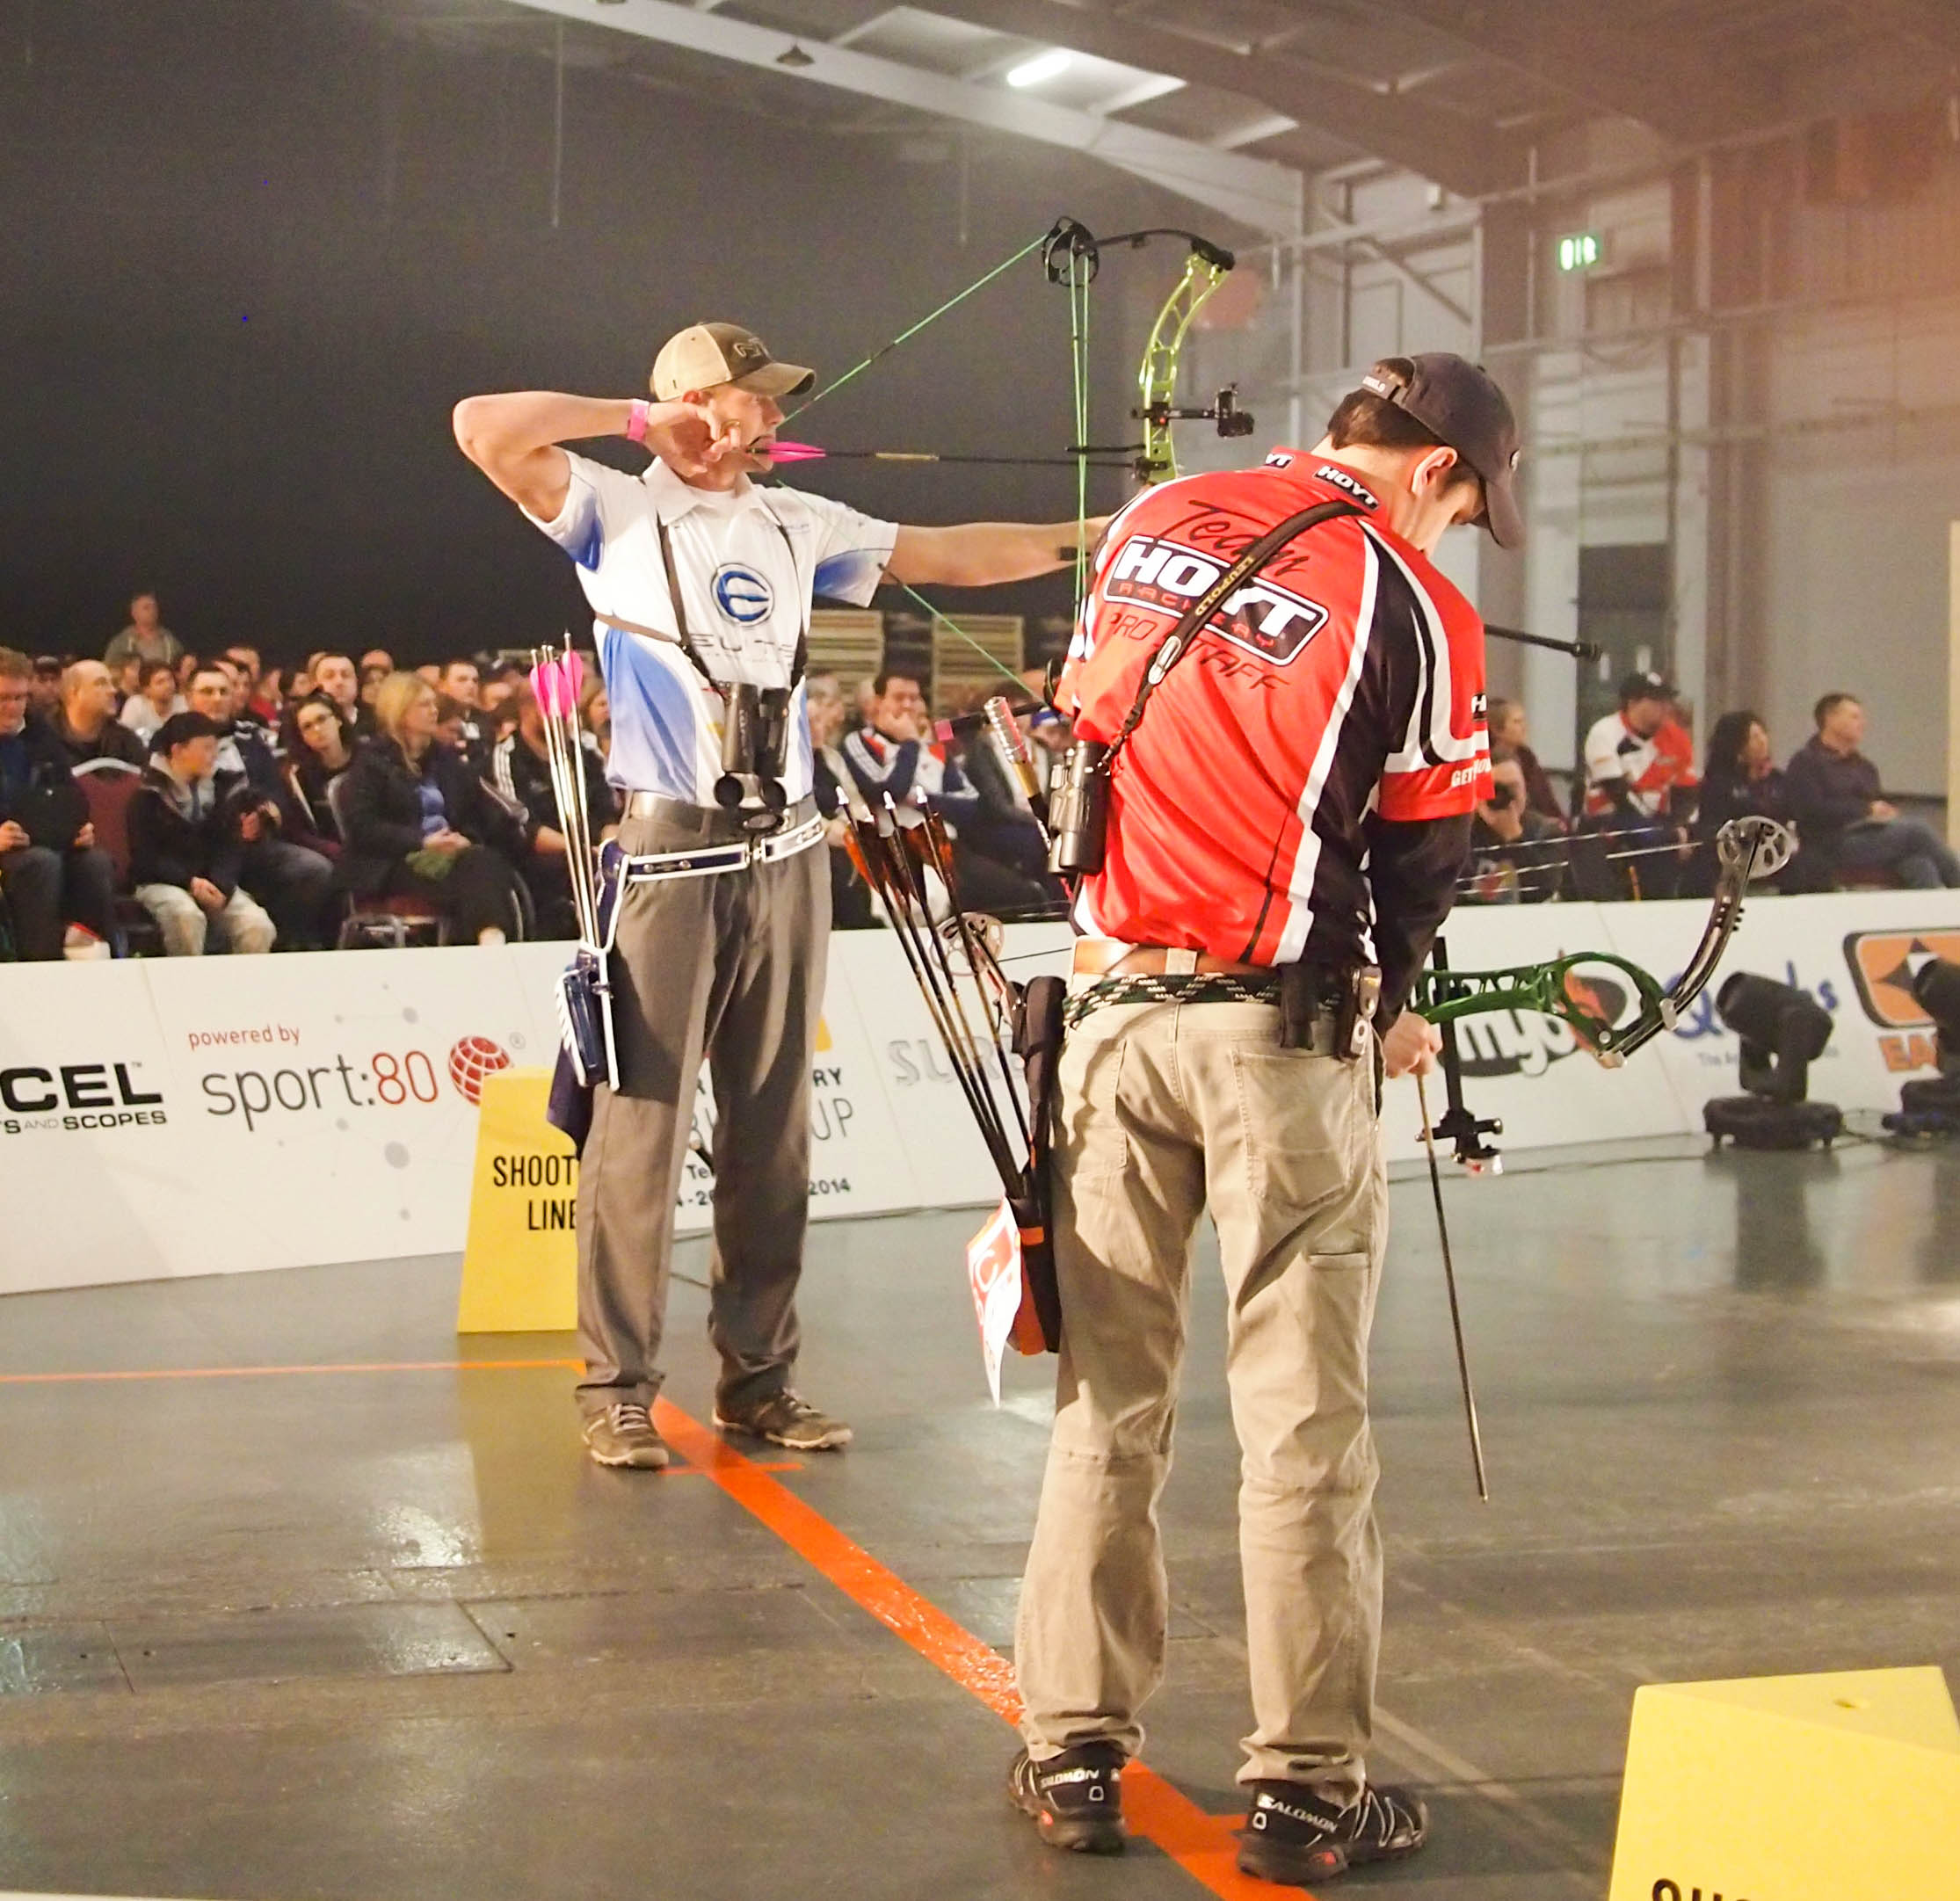 Levi Morgan v Paul Tedford at the 2014 European Archery Festival. © 2014 The Infinite Curve